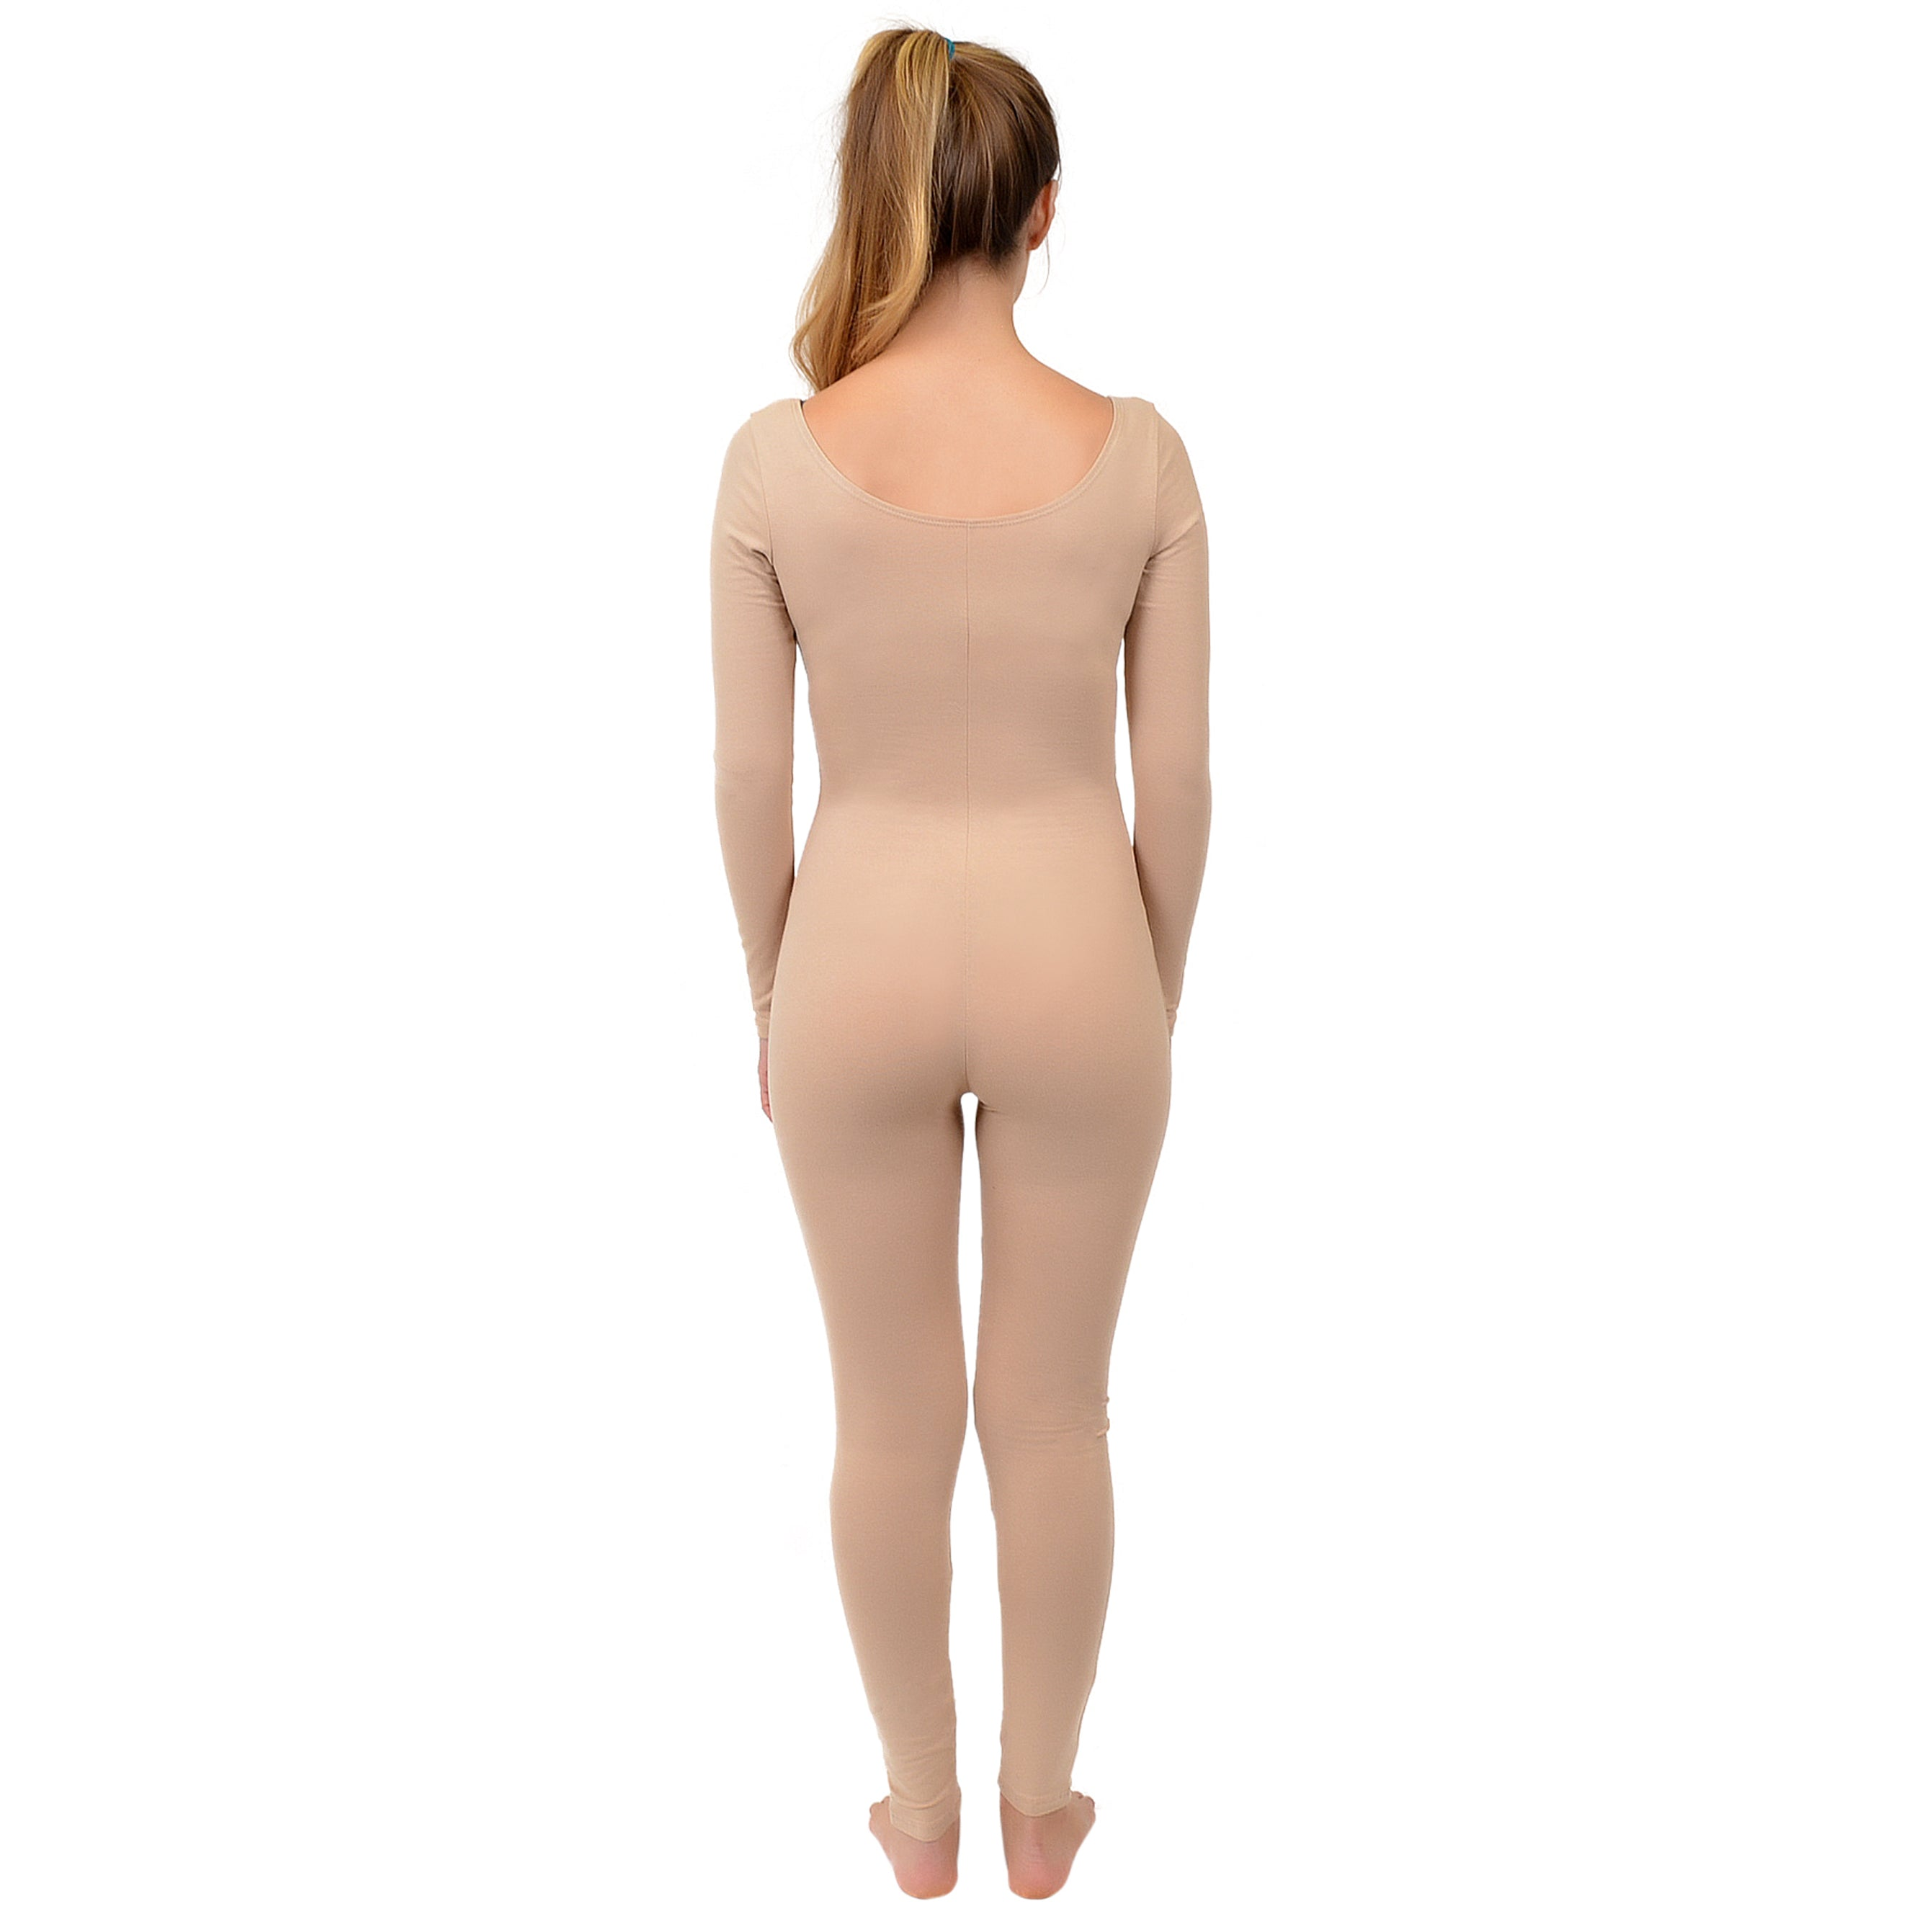 Women's COLOR Cotton Long Sleeve Unitard